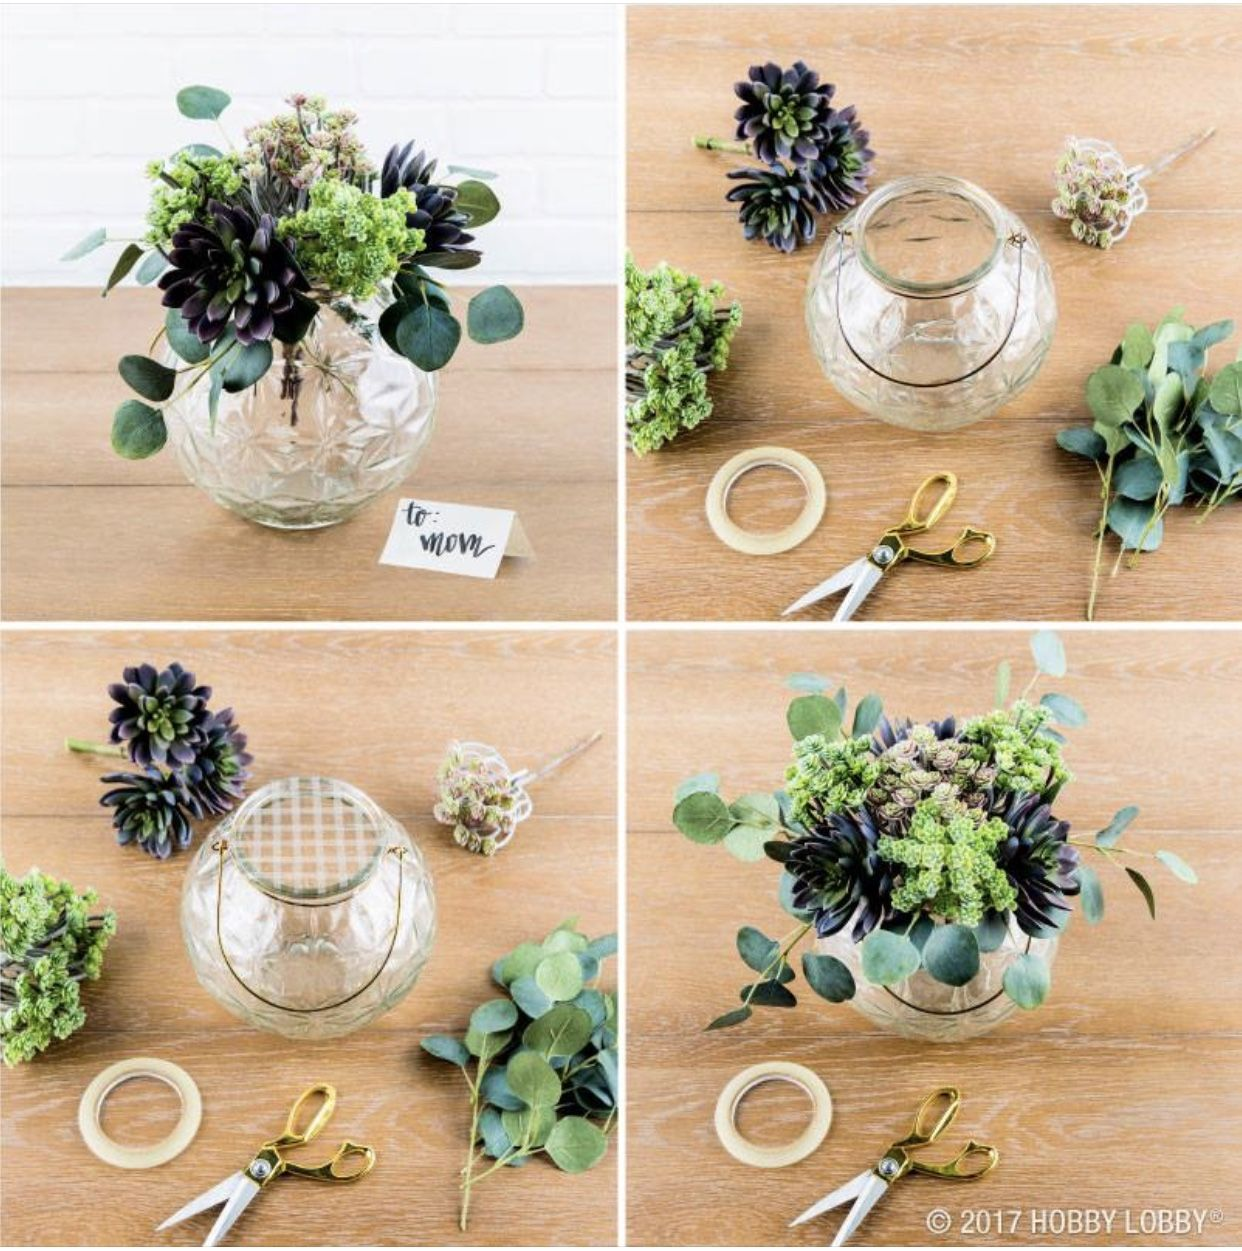 Hobby Lobby Wedding Ideas: Hobby Lobby-Small DIY Centerpiece - Greenery